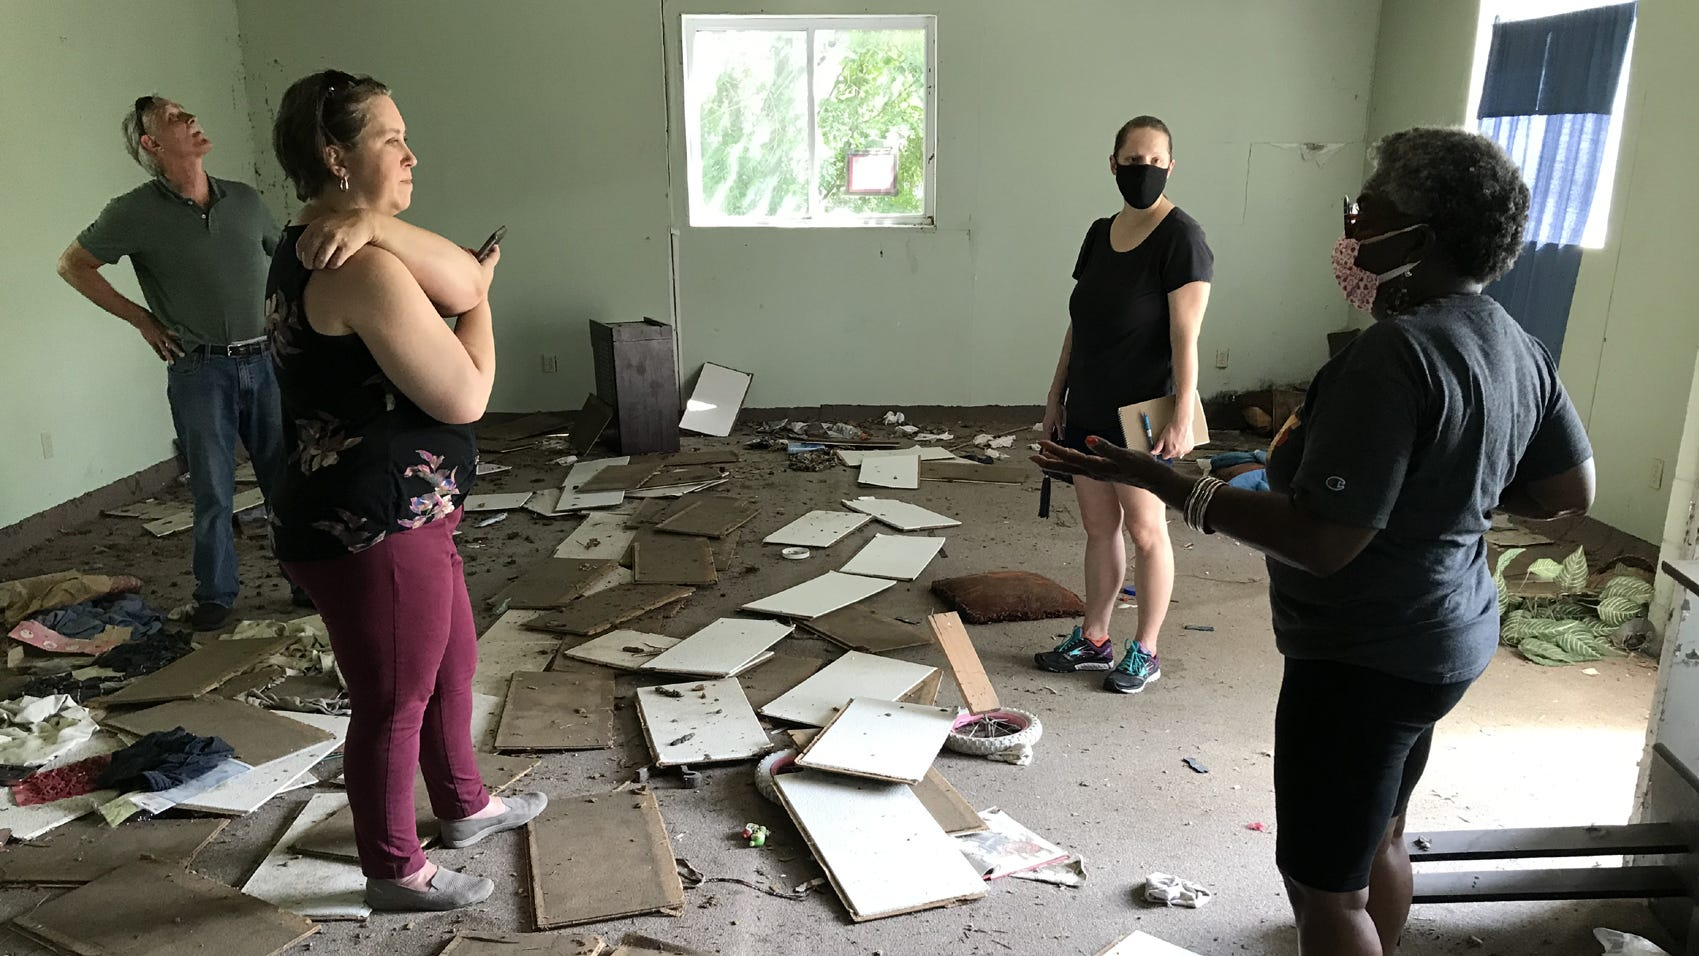 Historical Society officials visit local abandoned community center